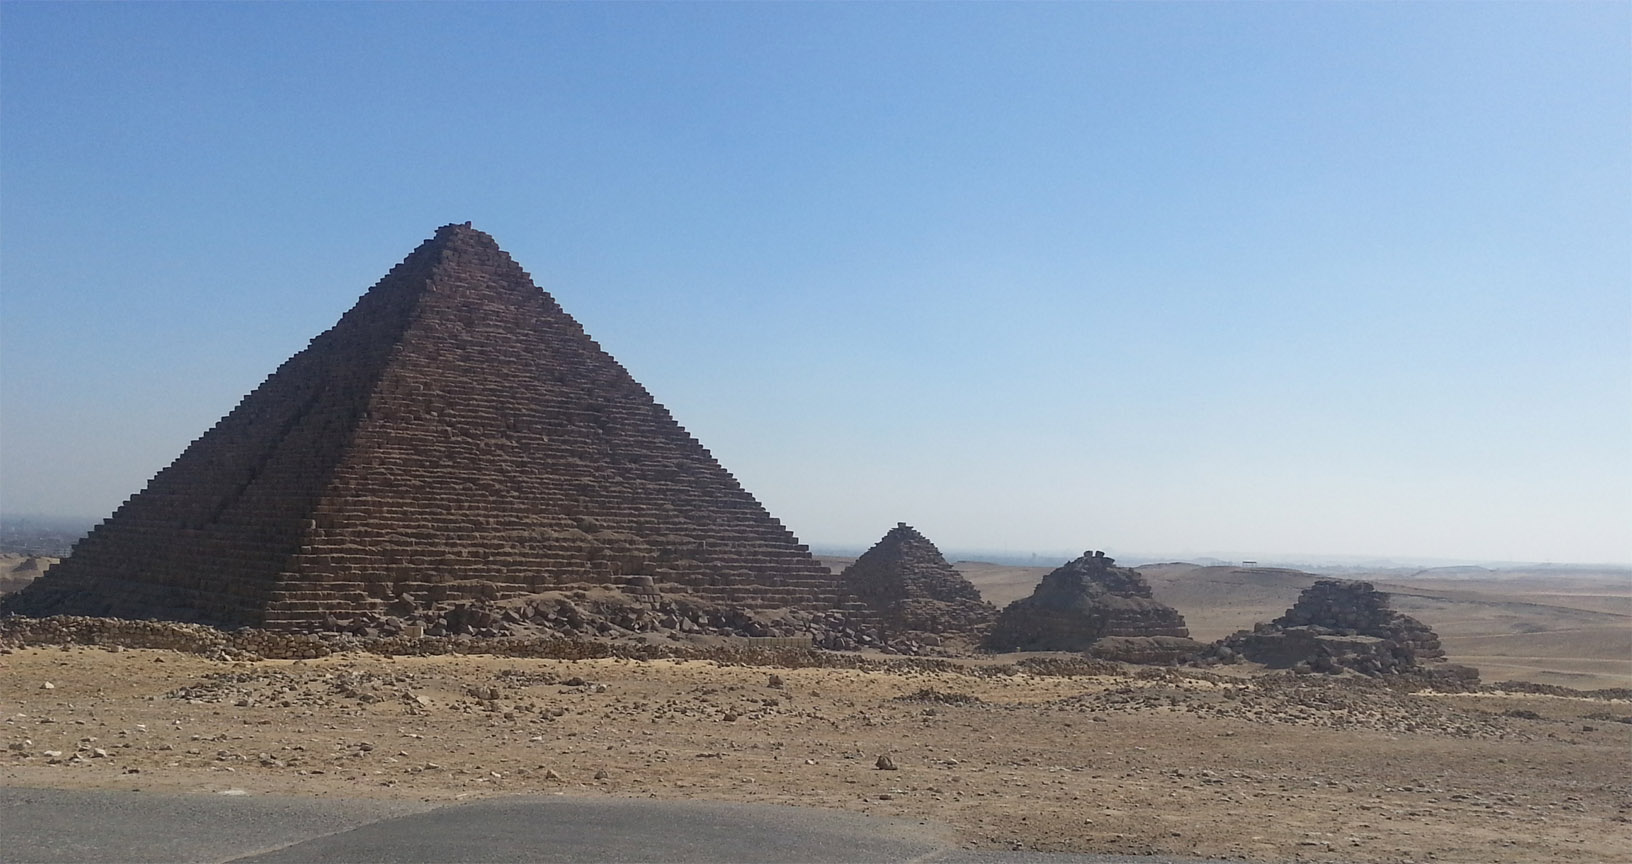 Queens pyramids in Giza